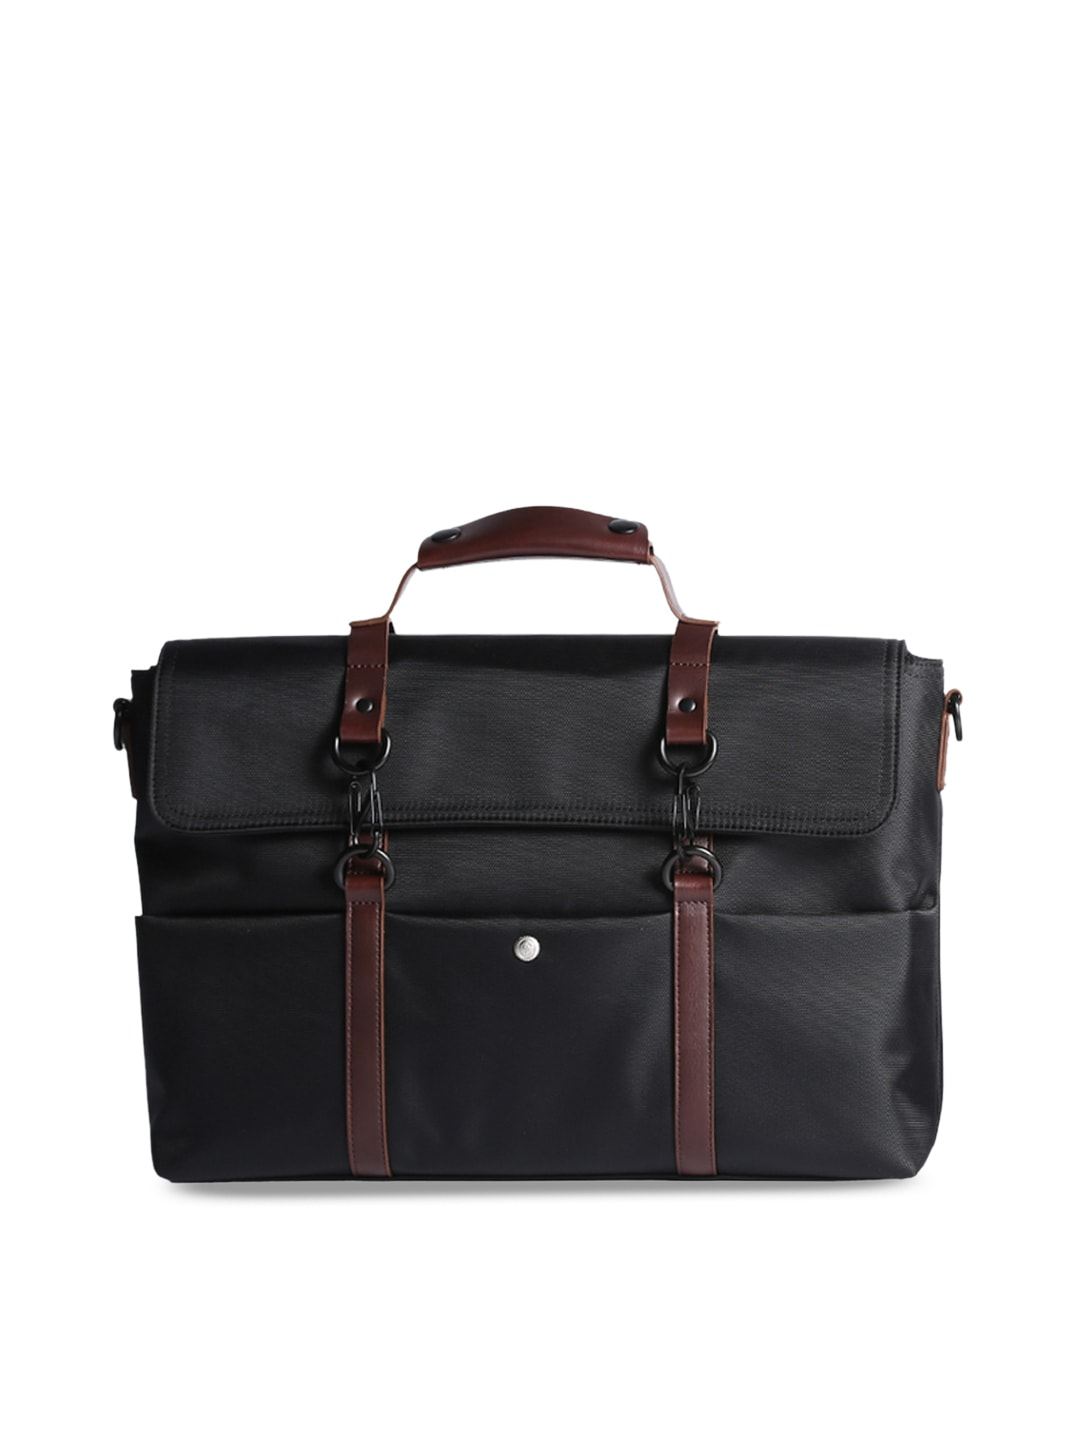 b1386705355c scarters Unisex Black & Brown Solid Laptop Bag